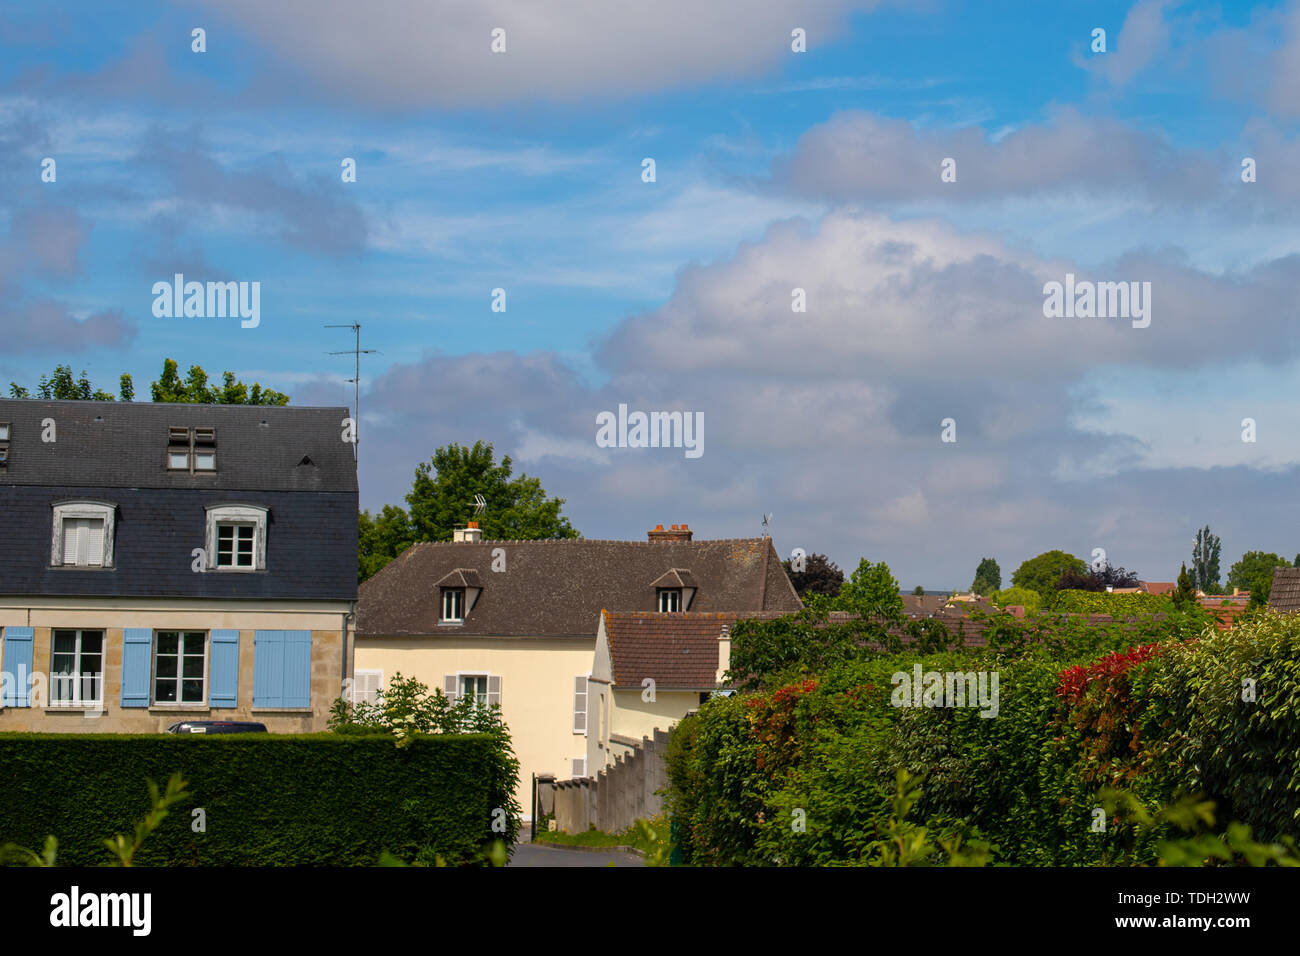 Blue cloudy and contrasting sky over a European village. French country houses. Hedge and lots of greenery down the alley. - Stock Image